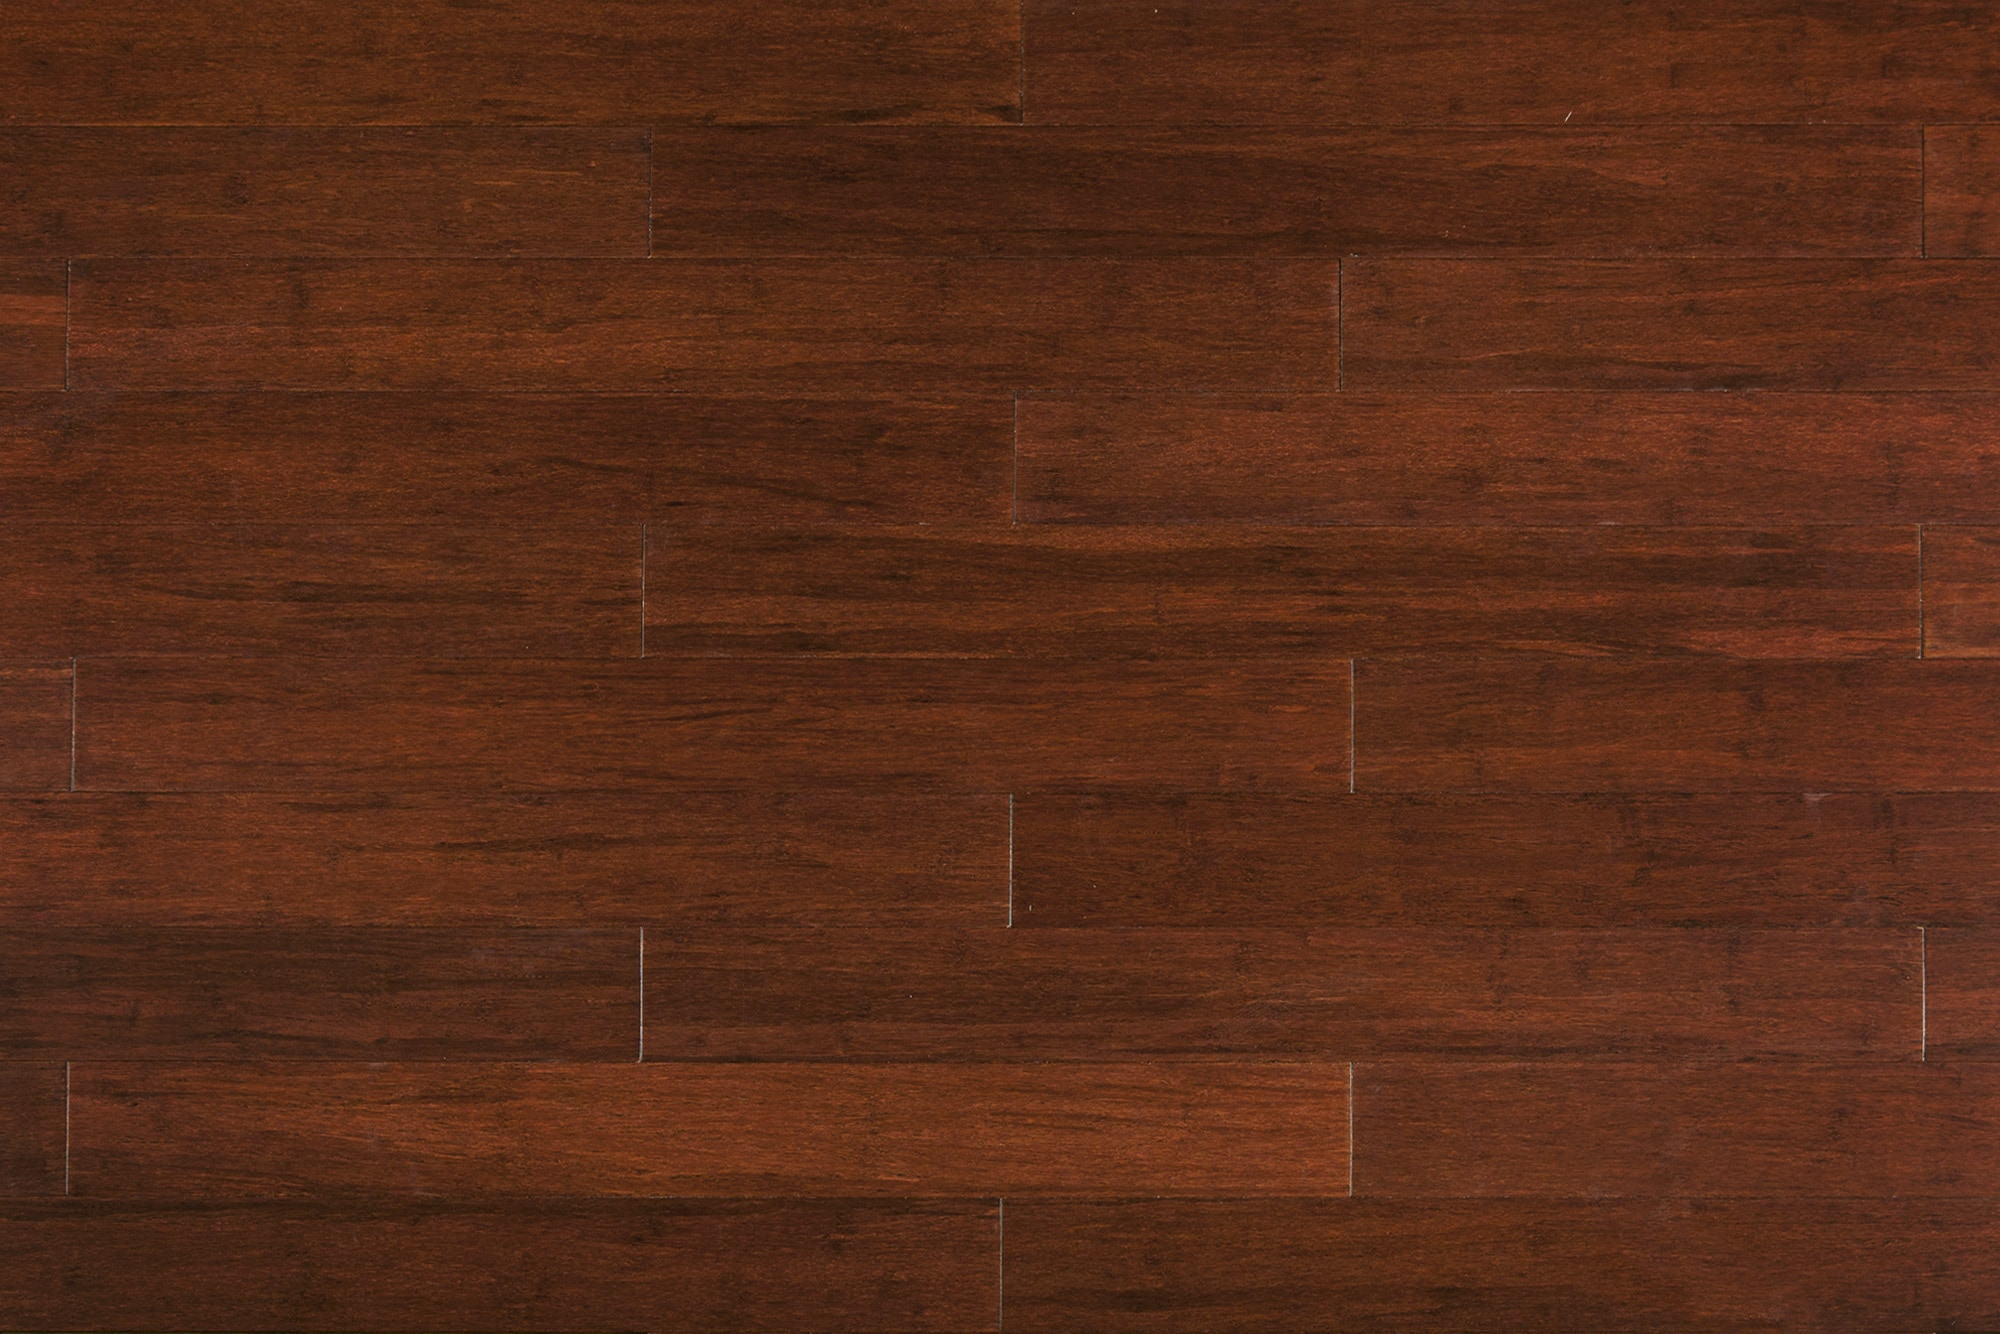 Bamboo Flooring Red